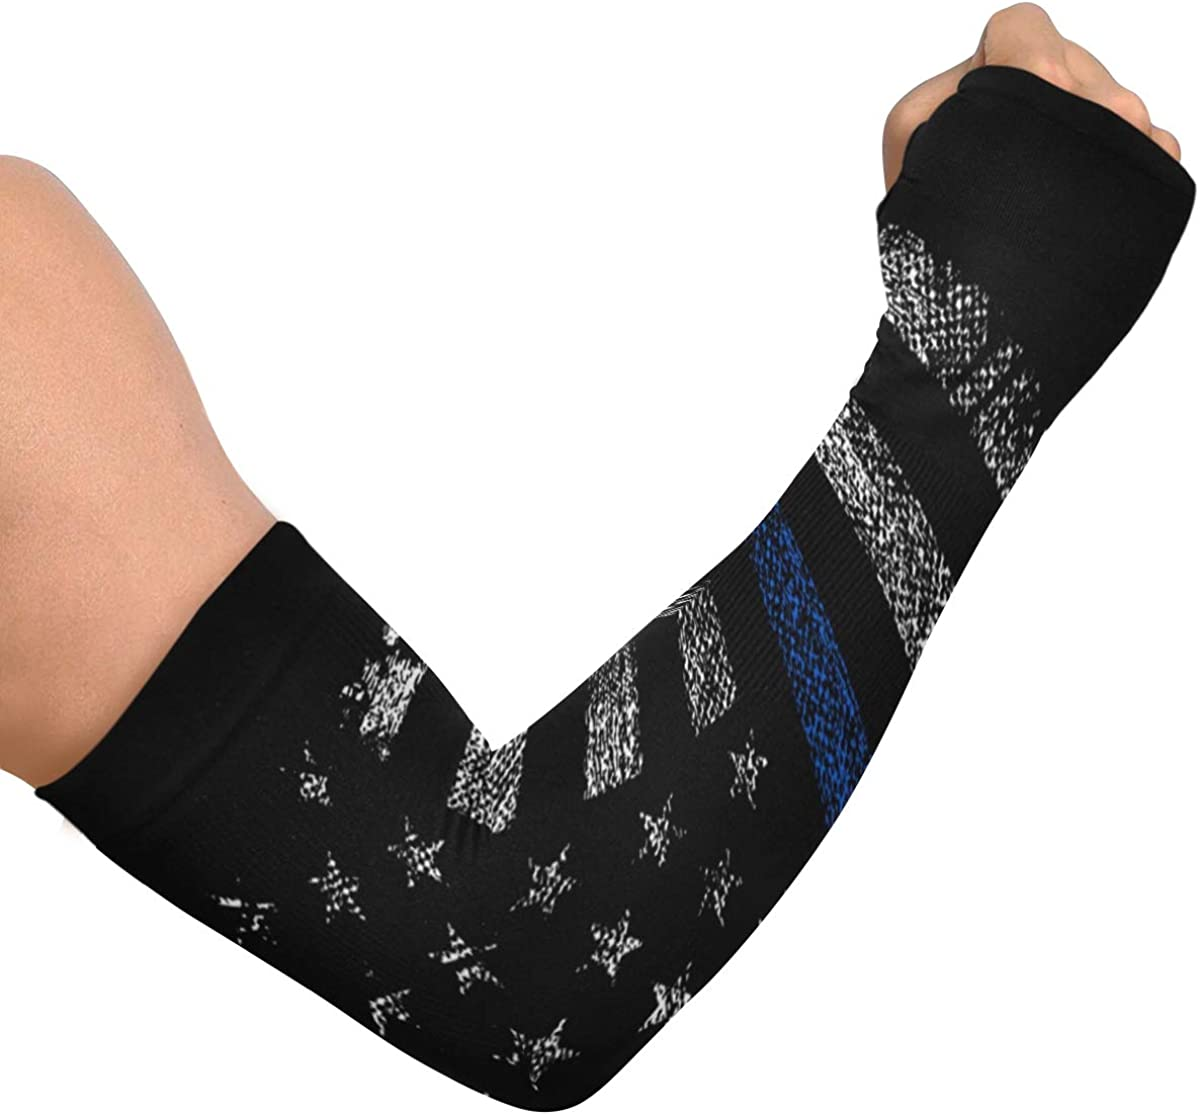 Cooling Arm Sleeves for Men Women, UV Forearm Sleeve to Cover Arms with Thumb Holes for Running Cycling Grunge Usa Police With Thin Blue Line